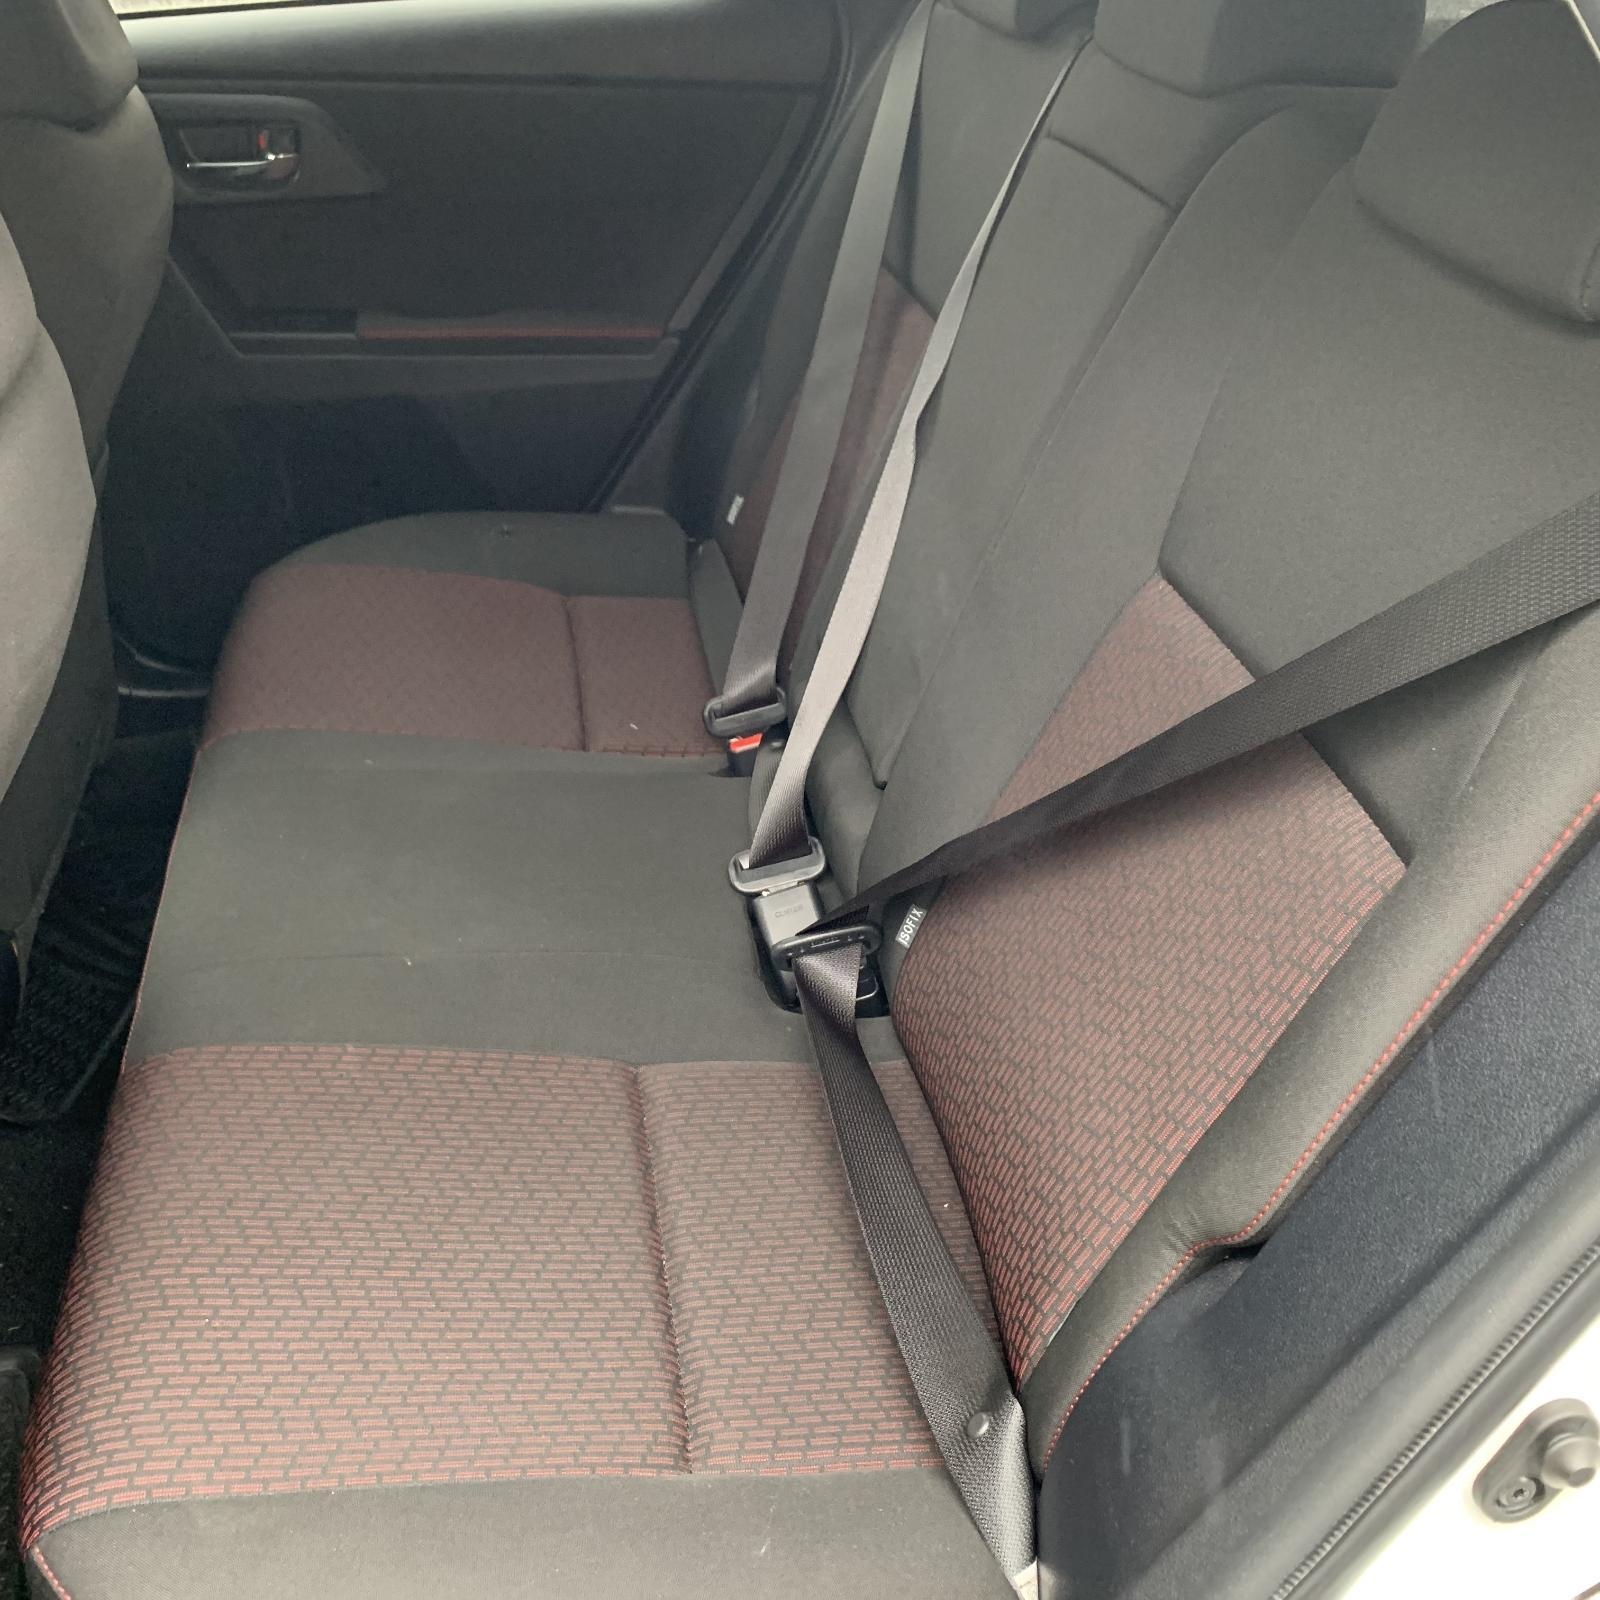 TOYOTA COROLLA, 2nd Seat (Rear Seat), LH REAR, HATCH, ZRE182R, CLOTH, SX, 10/12-03/15